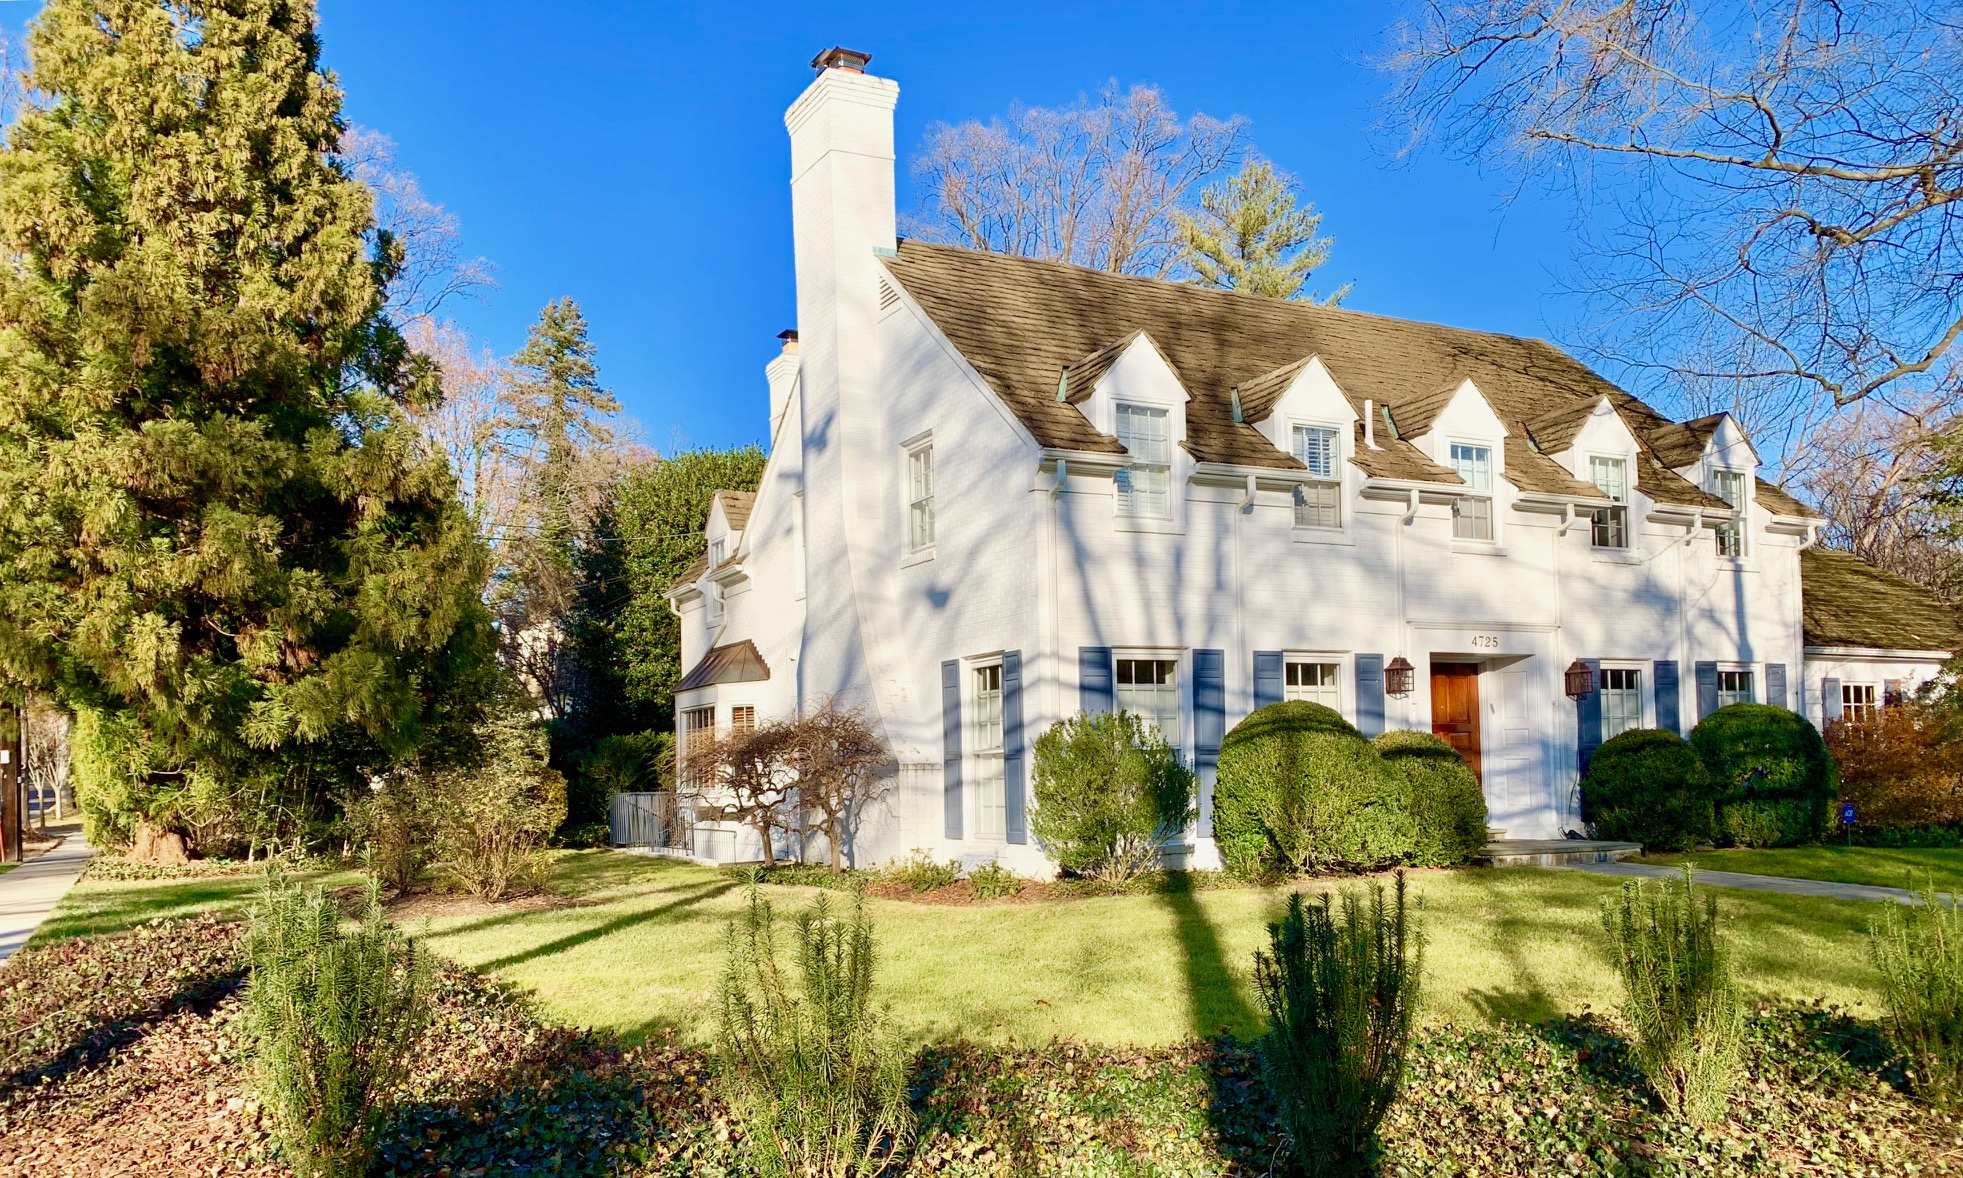 Somerset, MD Luxury Real Estate & Homes For Sale. Dorset Ave. Artyom Shmatko Luxury Real Estate Agent